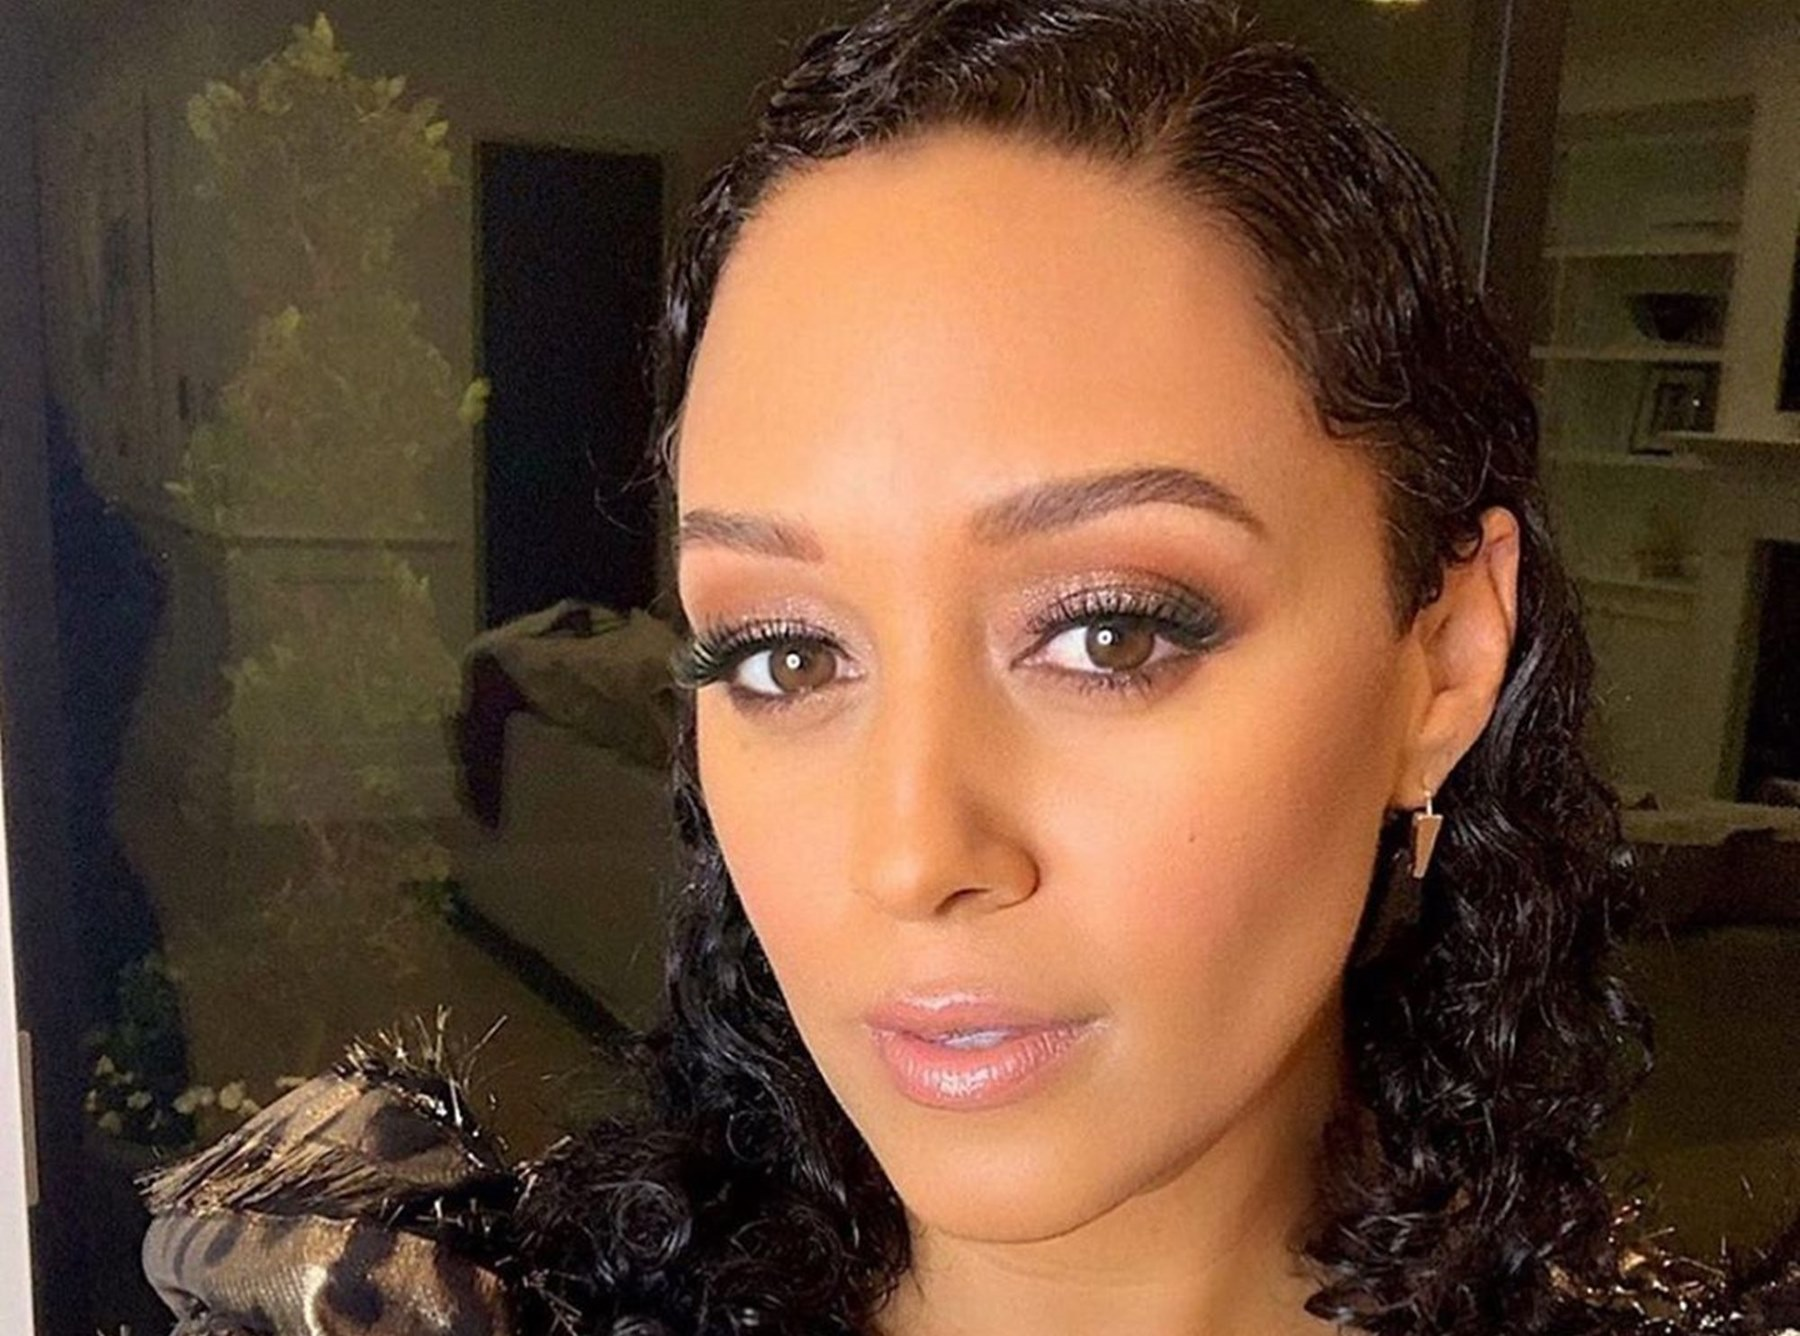 tia-mowry-hardrict-explains-how-she-is-coping-with-the-many-pains-she-has-gone-through-in-2020-with-a-beautiful-message-inspired-by-cairo